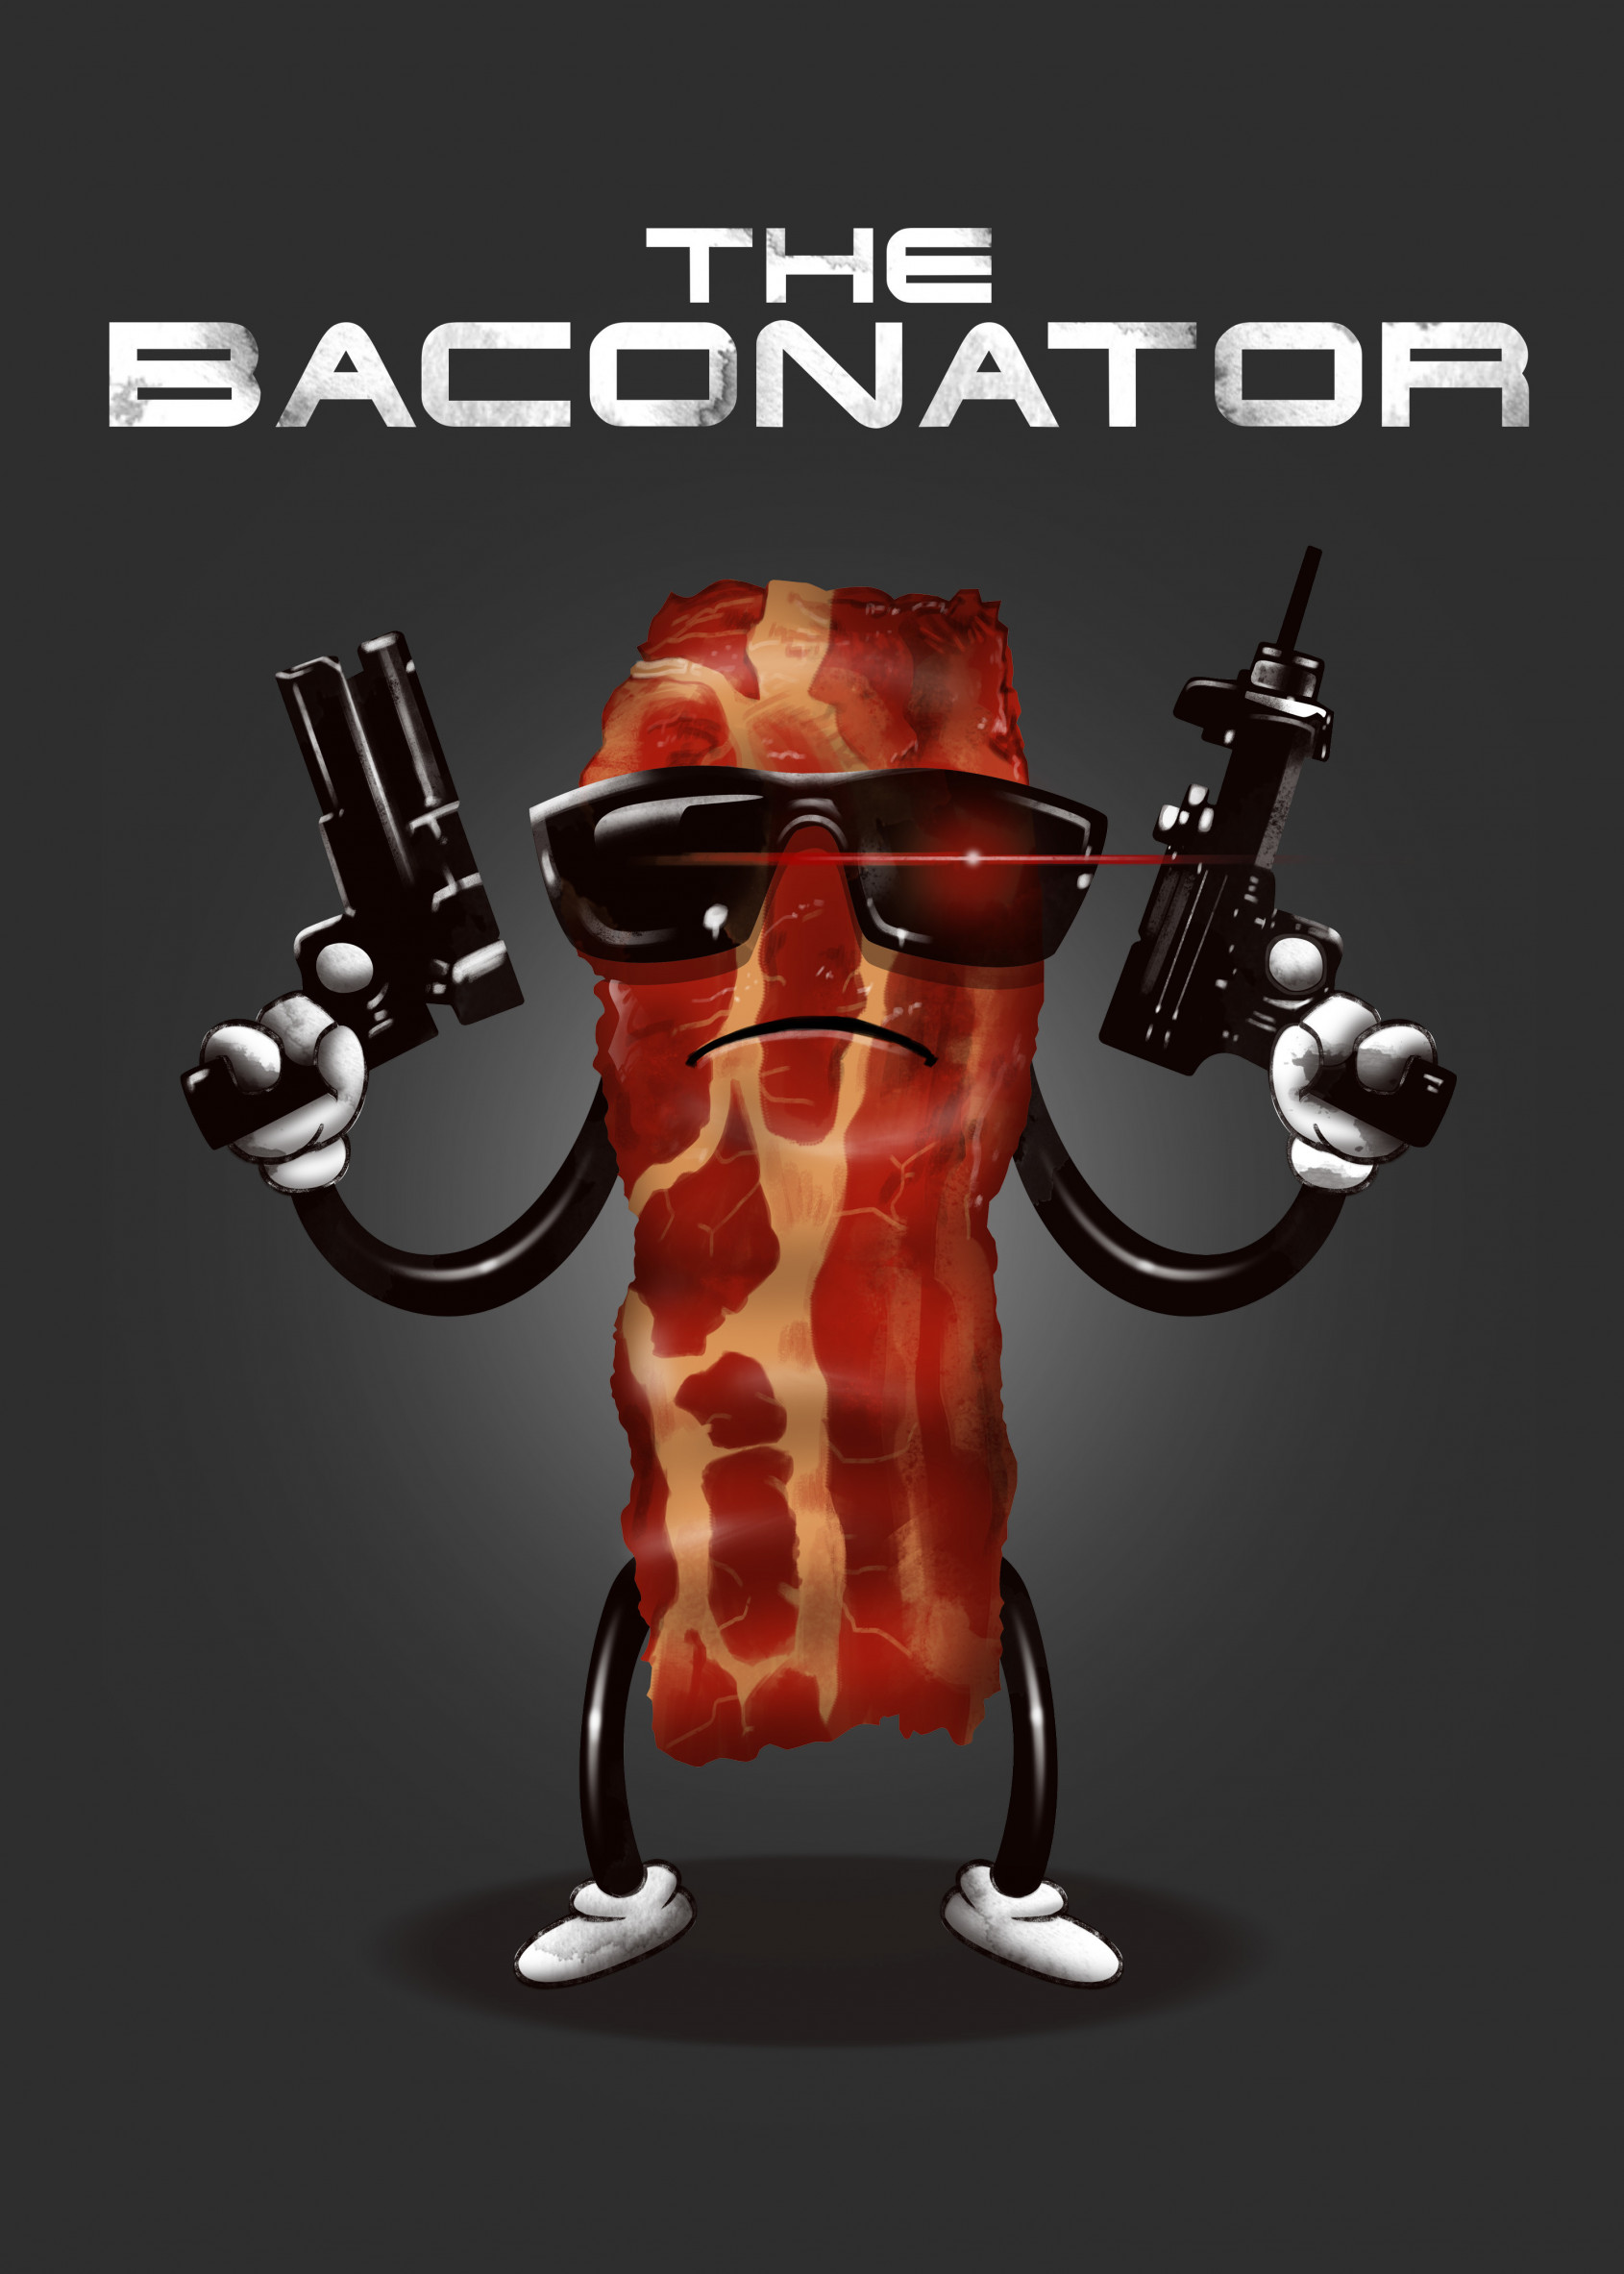 bacon with guns